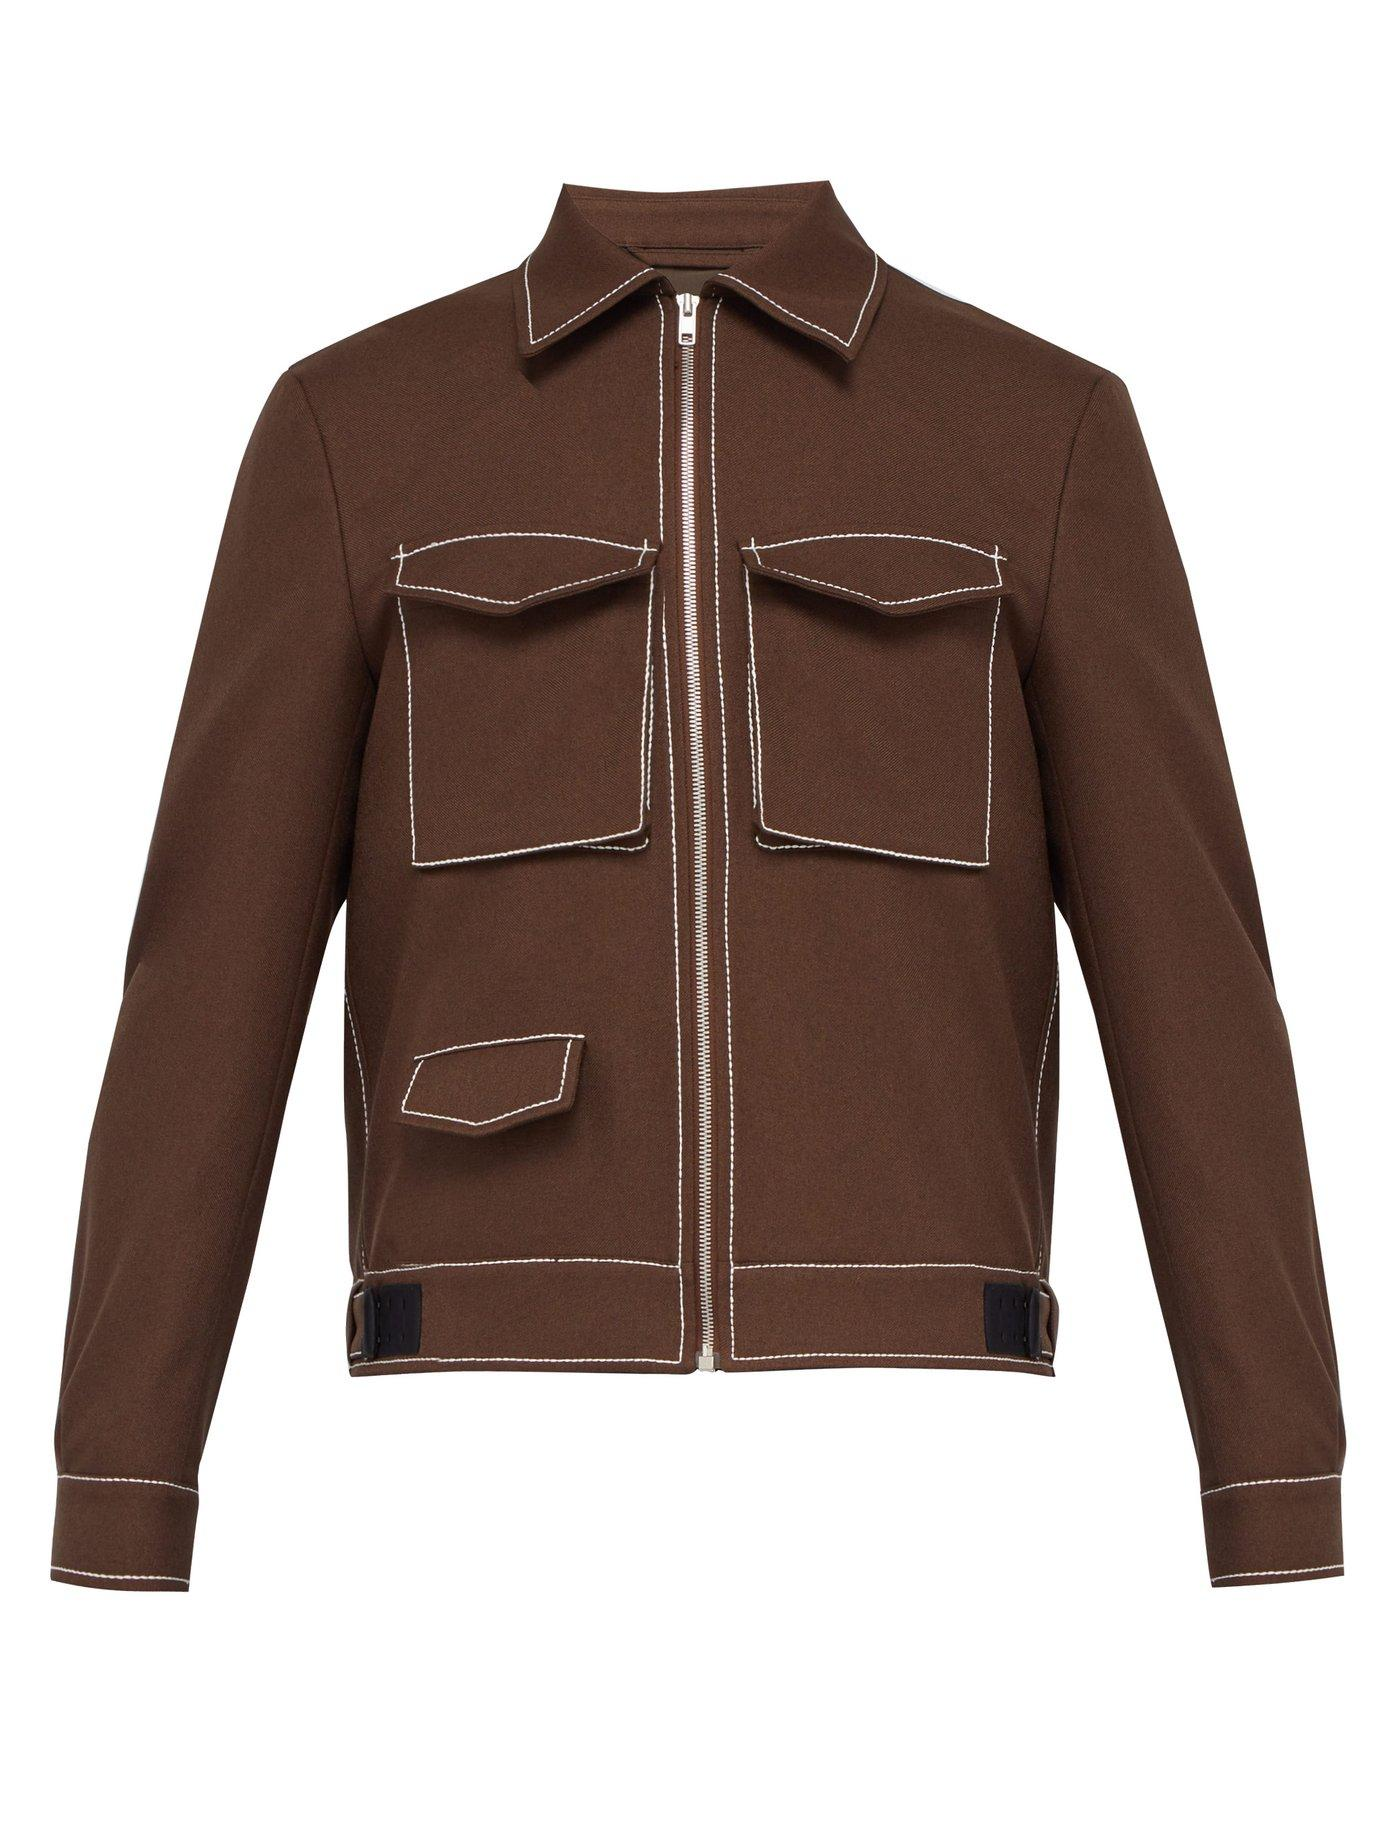 54403349a6 Lyst - Maison Margiela Topstitched Twill Jacket in Brown for Men